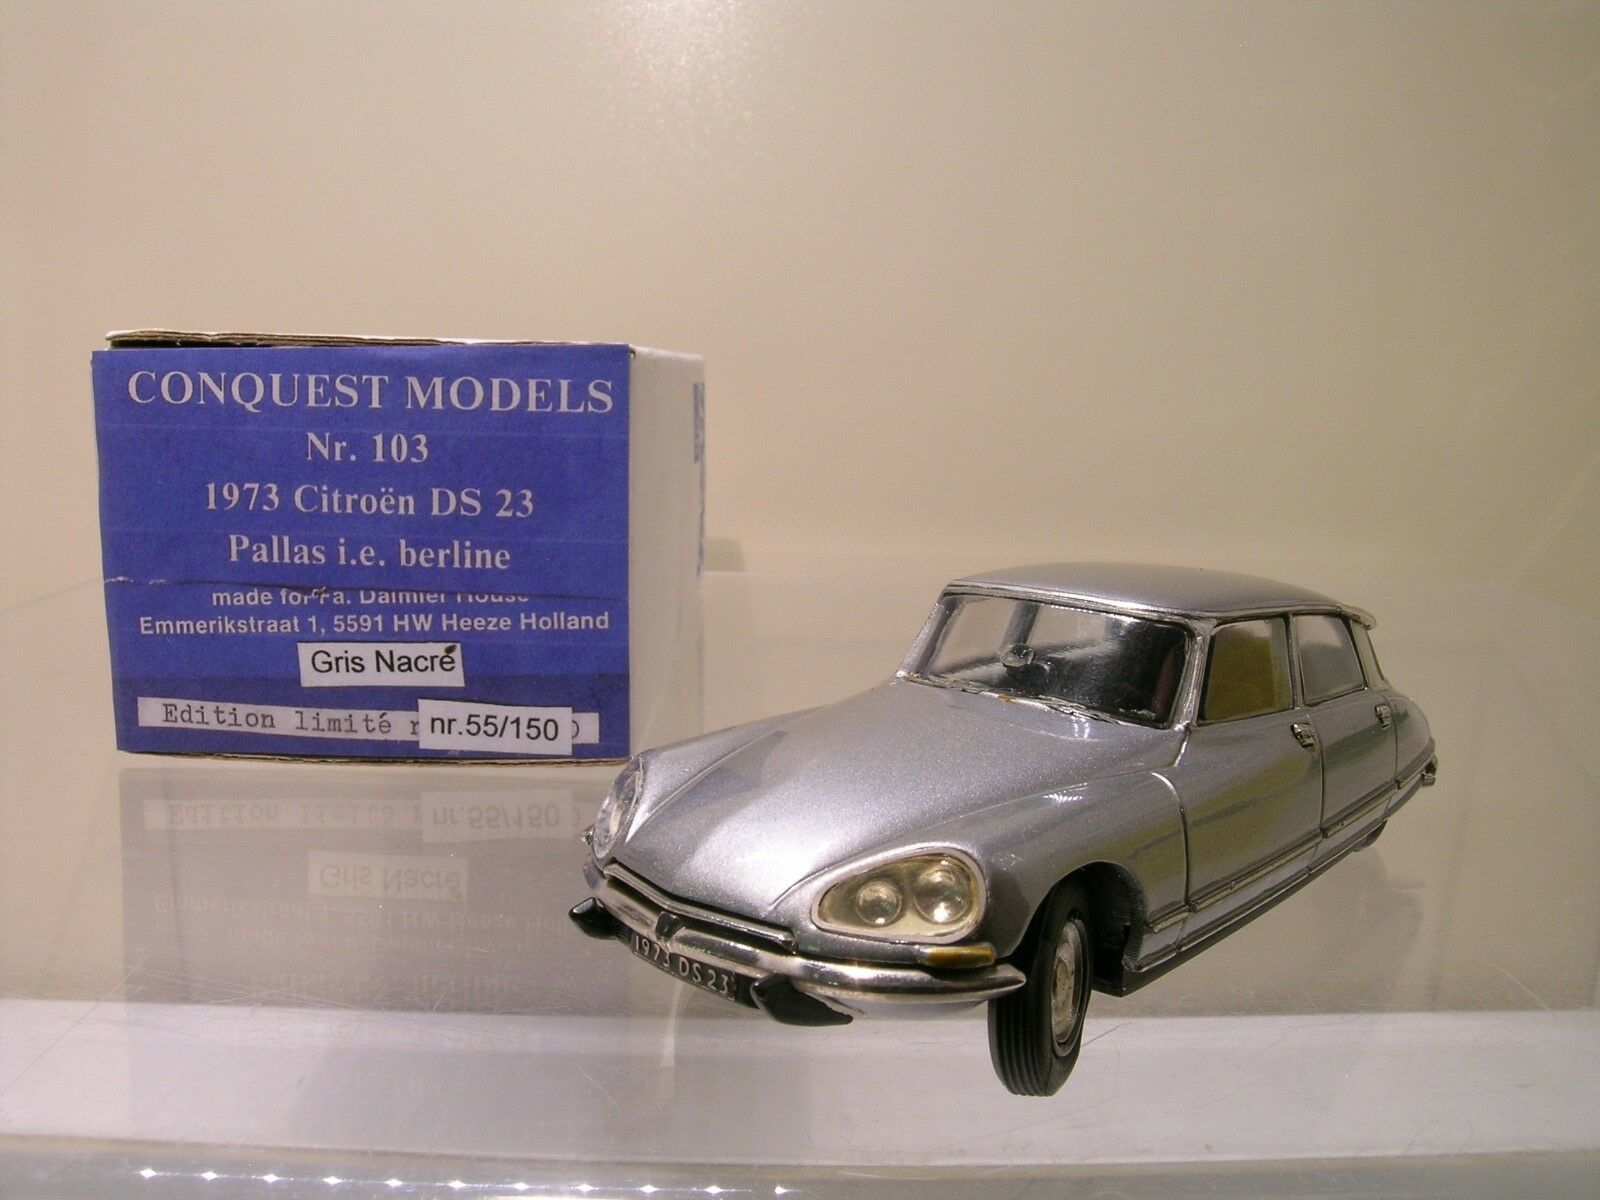 CONQUEST MODELS No.103 CITROËN DS23 PALLAS I.E. BERLINE1973 GREY MET. HANDB.1 43